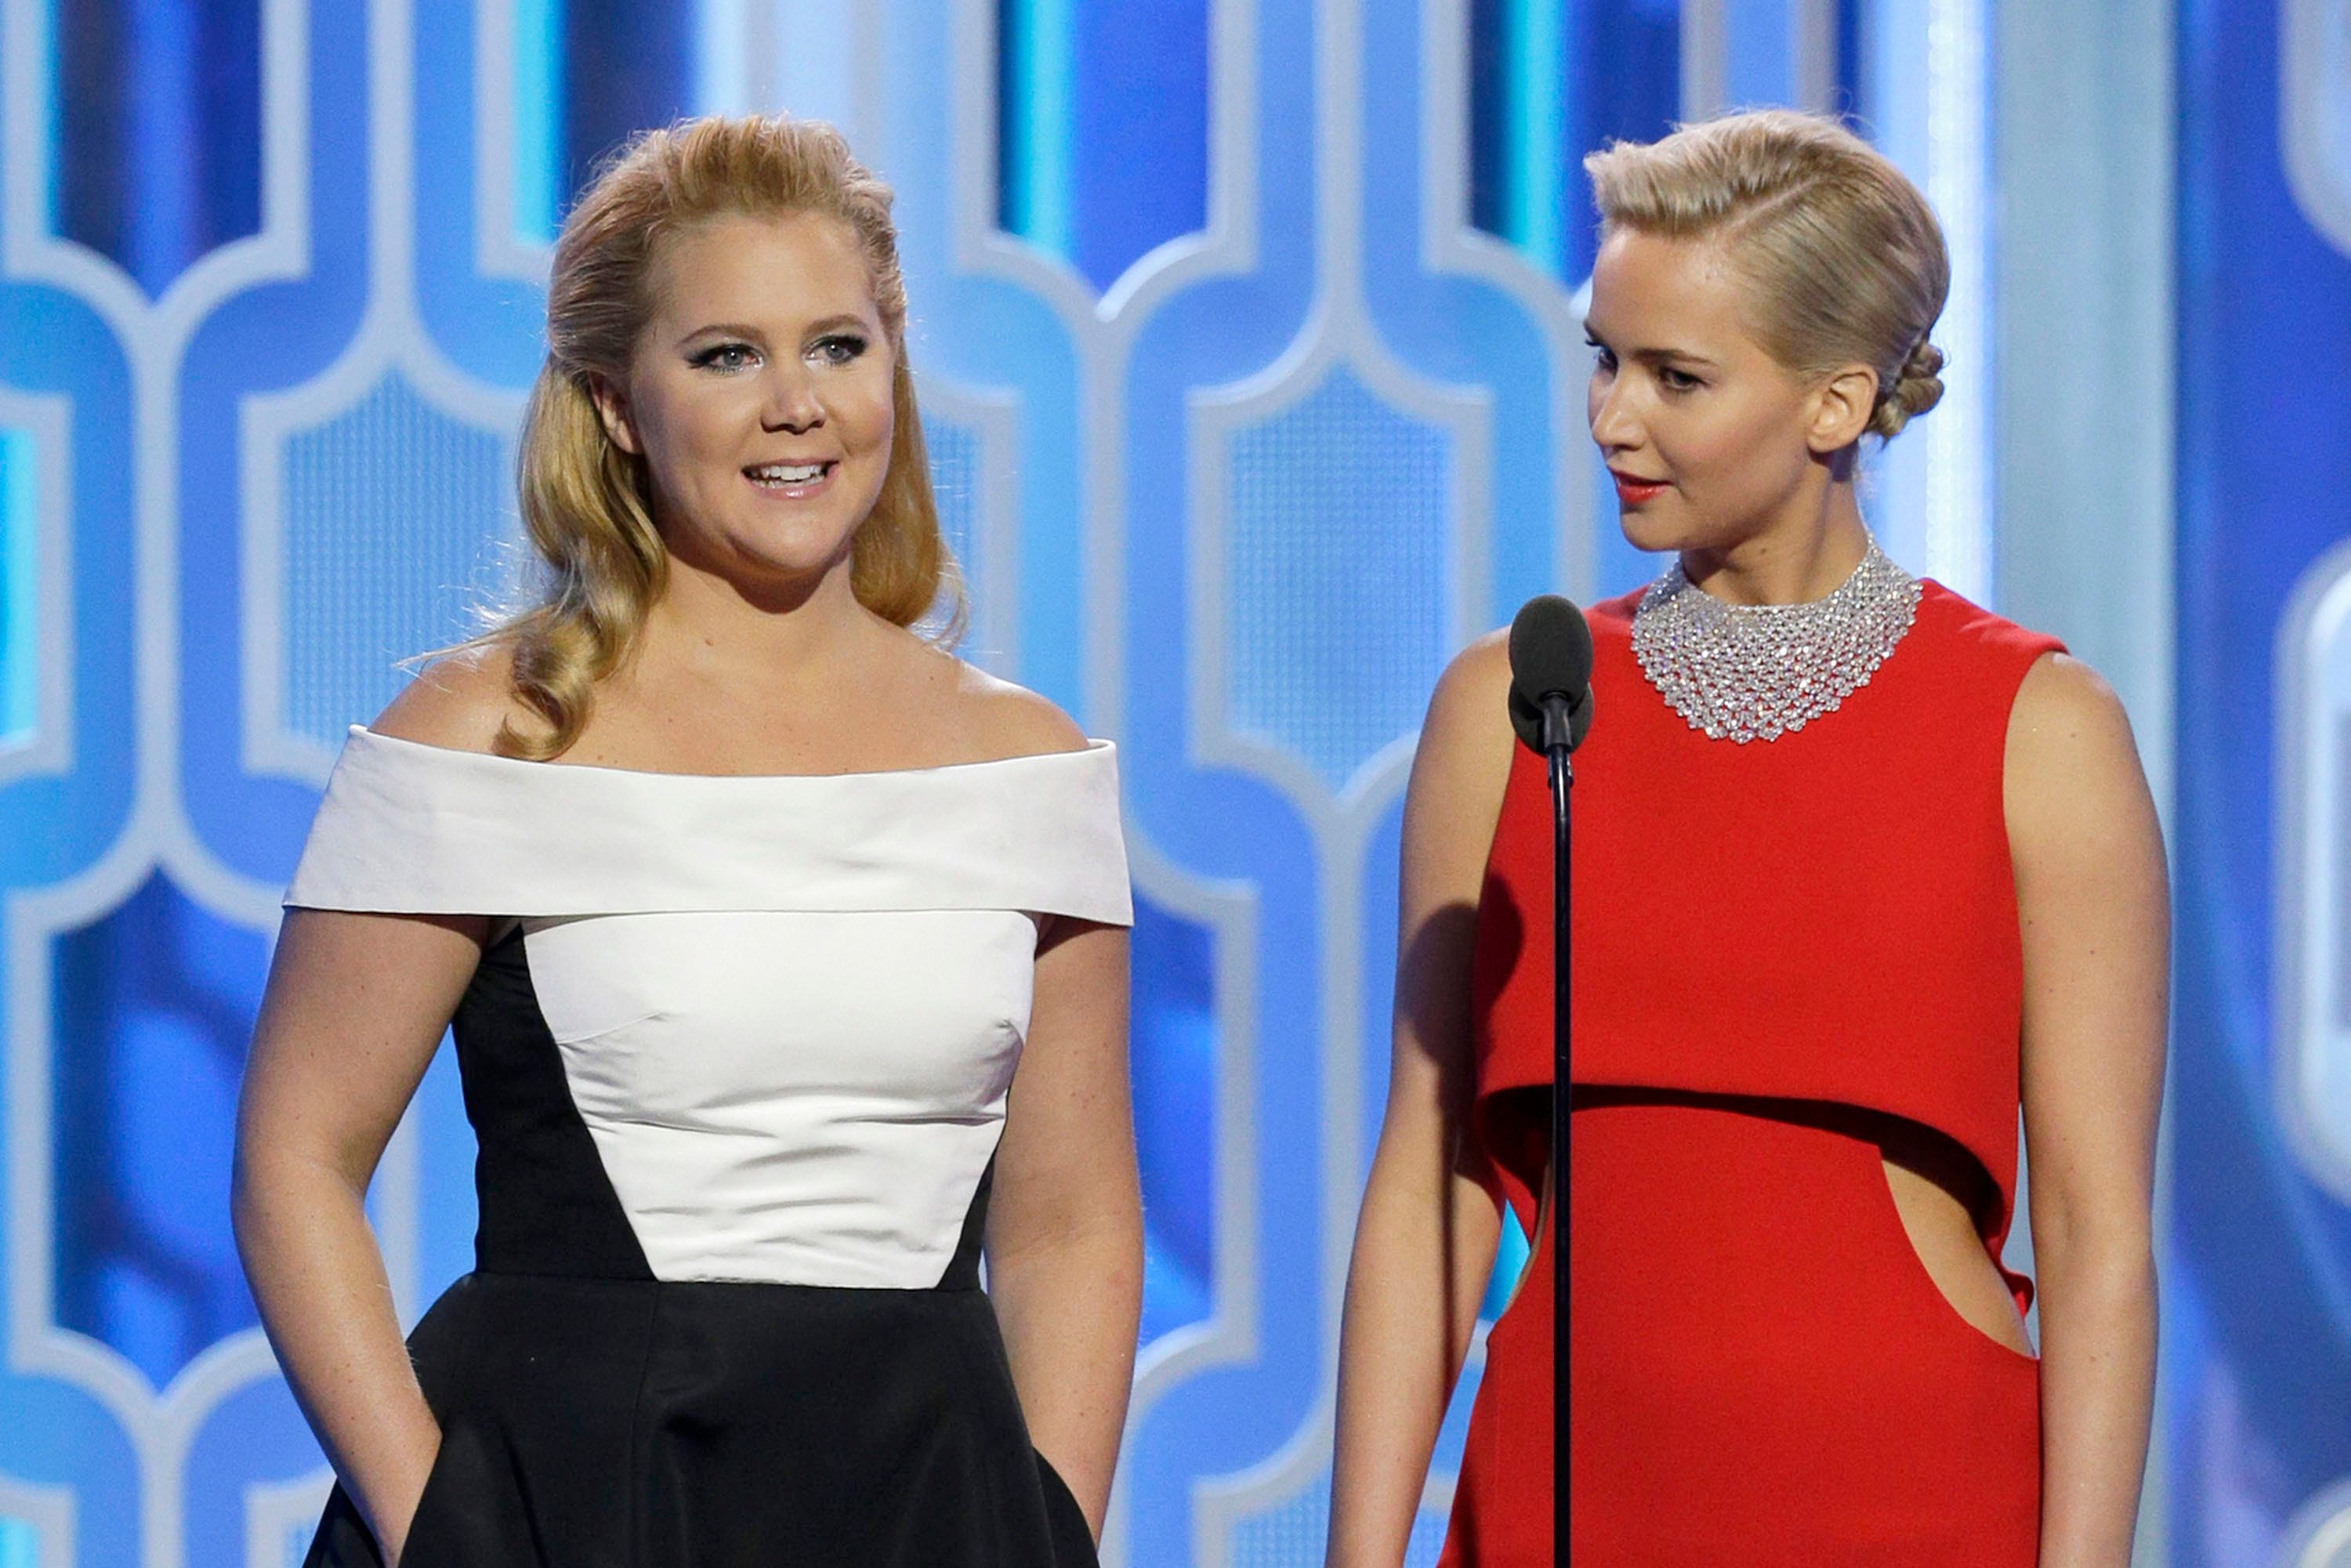 Amy Schumer gave a brutally amusing note to Jennifer Lawrence after breakup